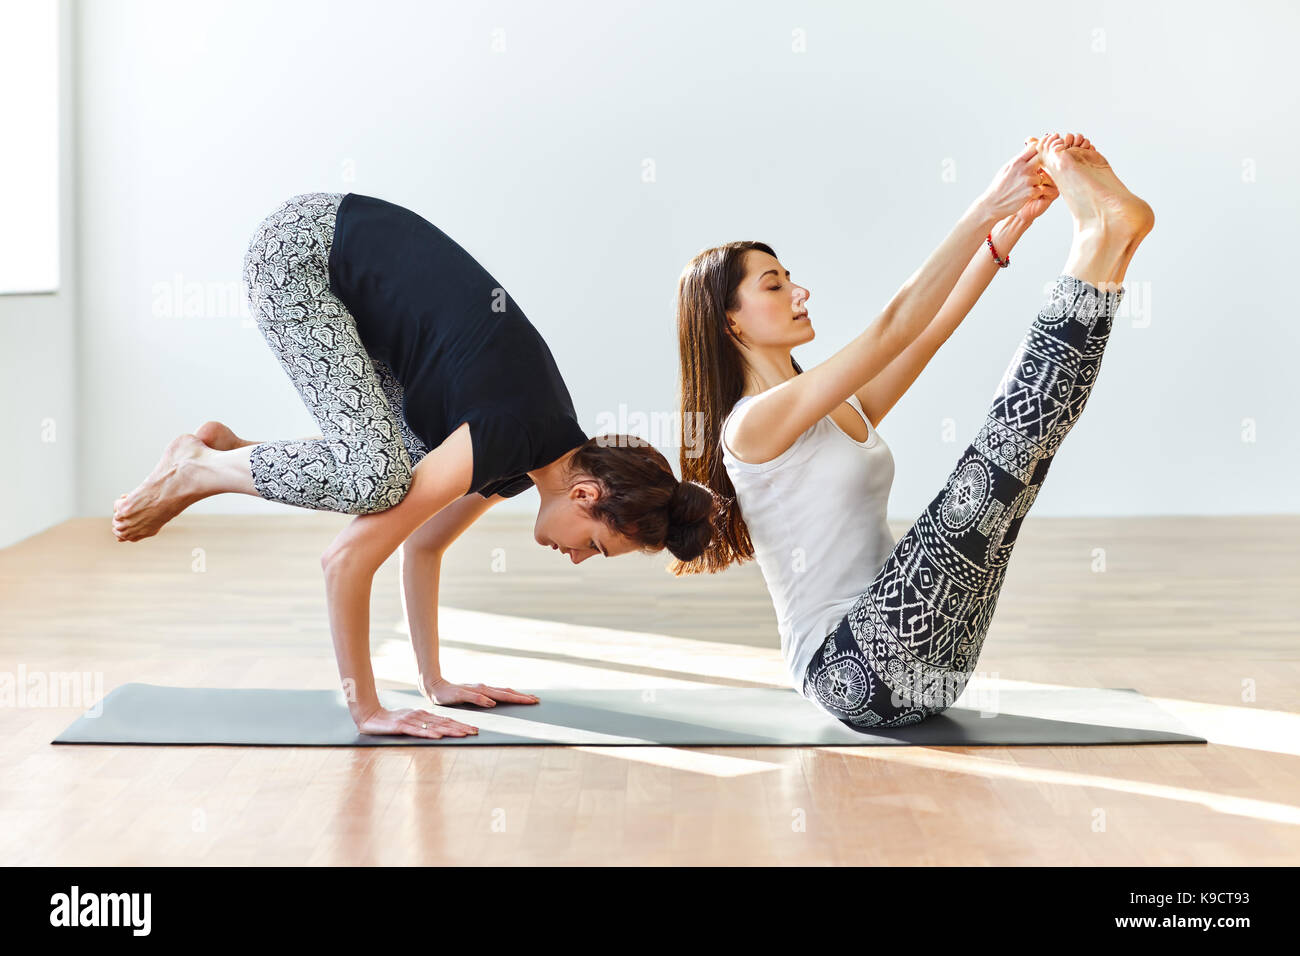 Two Young Women Practicing Yoga Poses And Asanas Partner Yoga Stock Photo Alamy